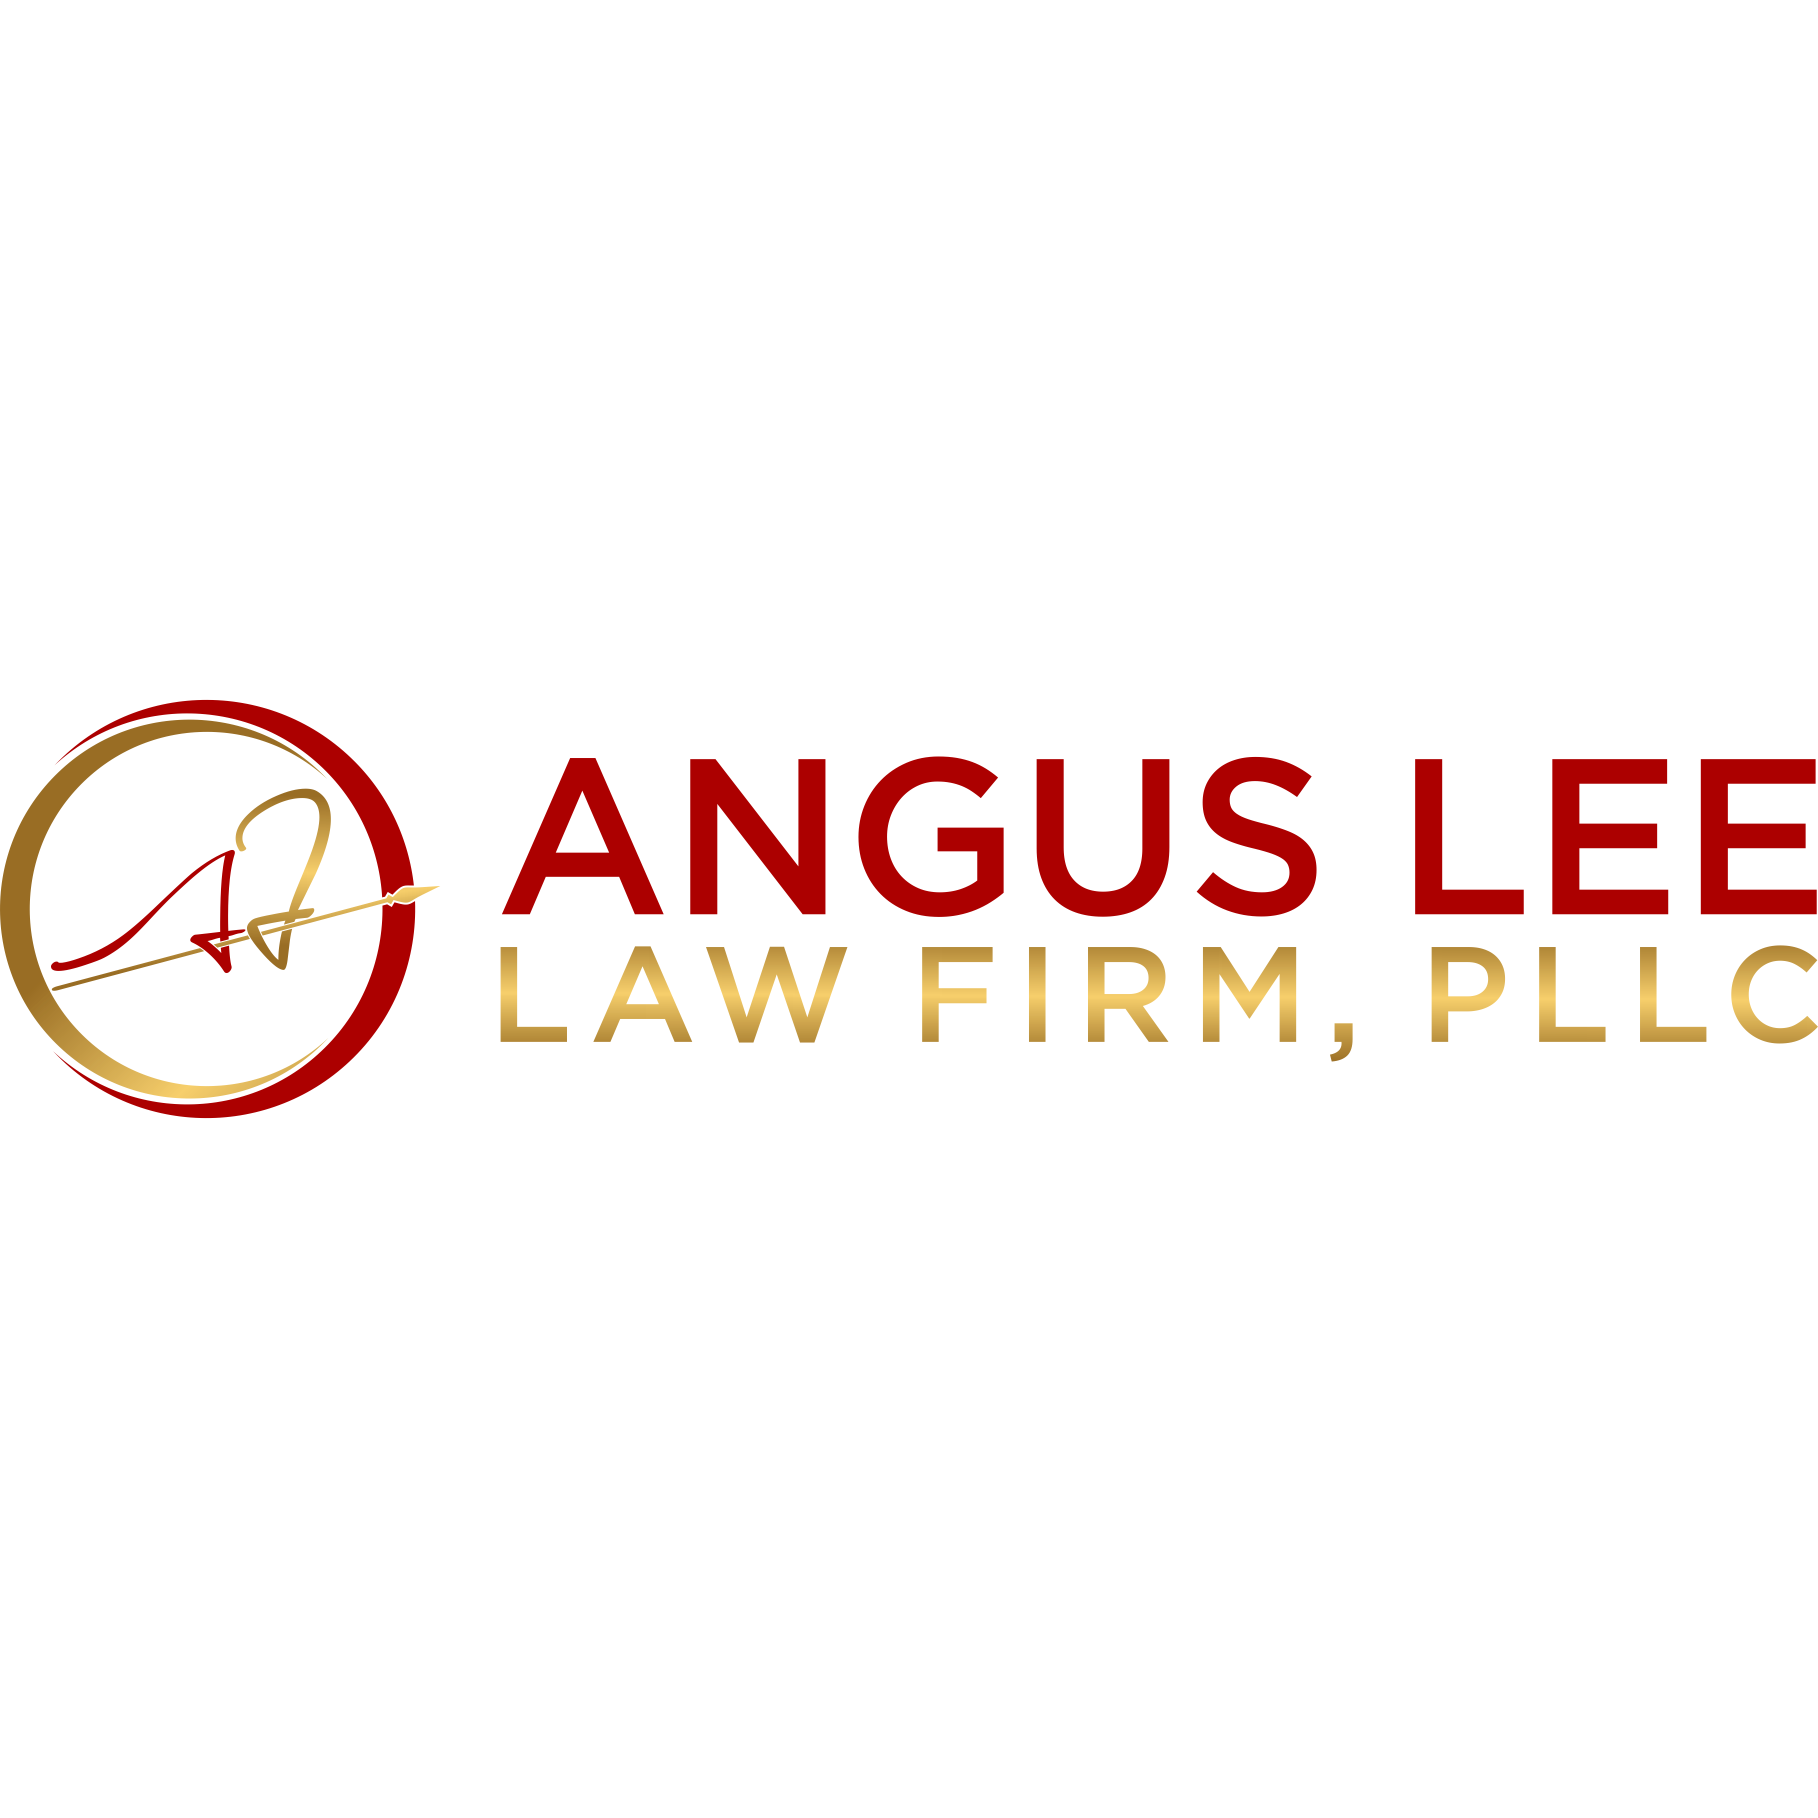 Angus Lee Law Firm